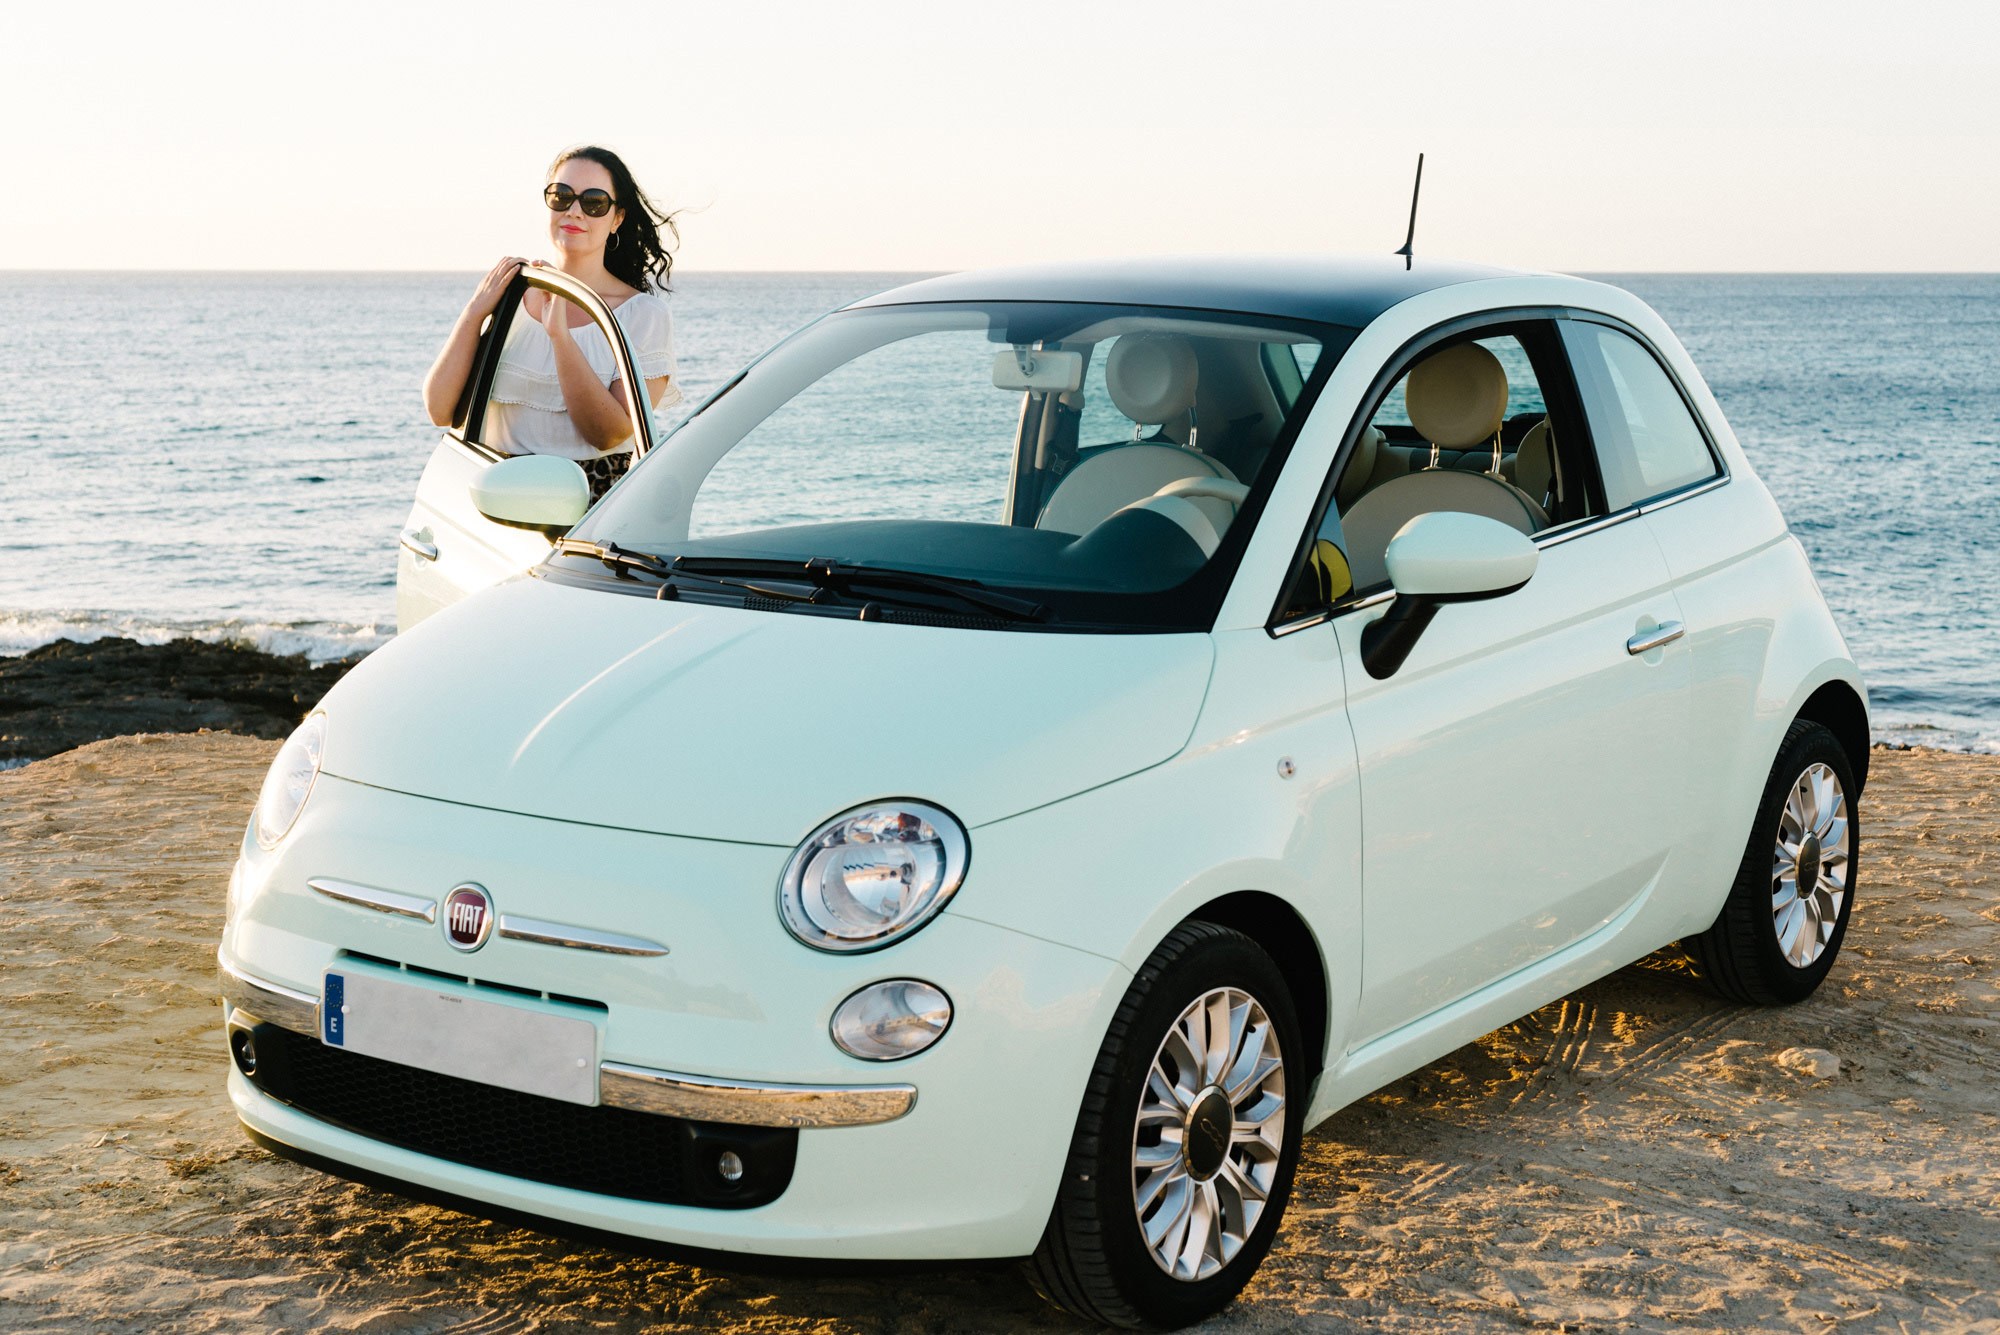 Spearmint-FIAT-500-Ibiza-Beach